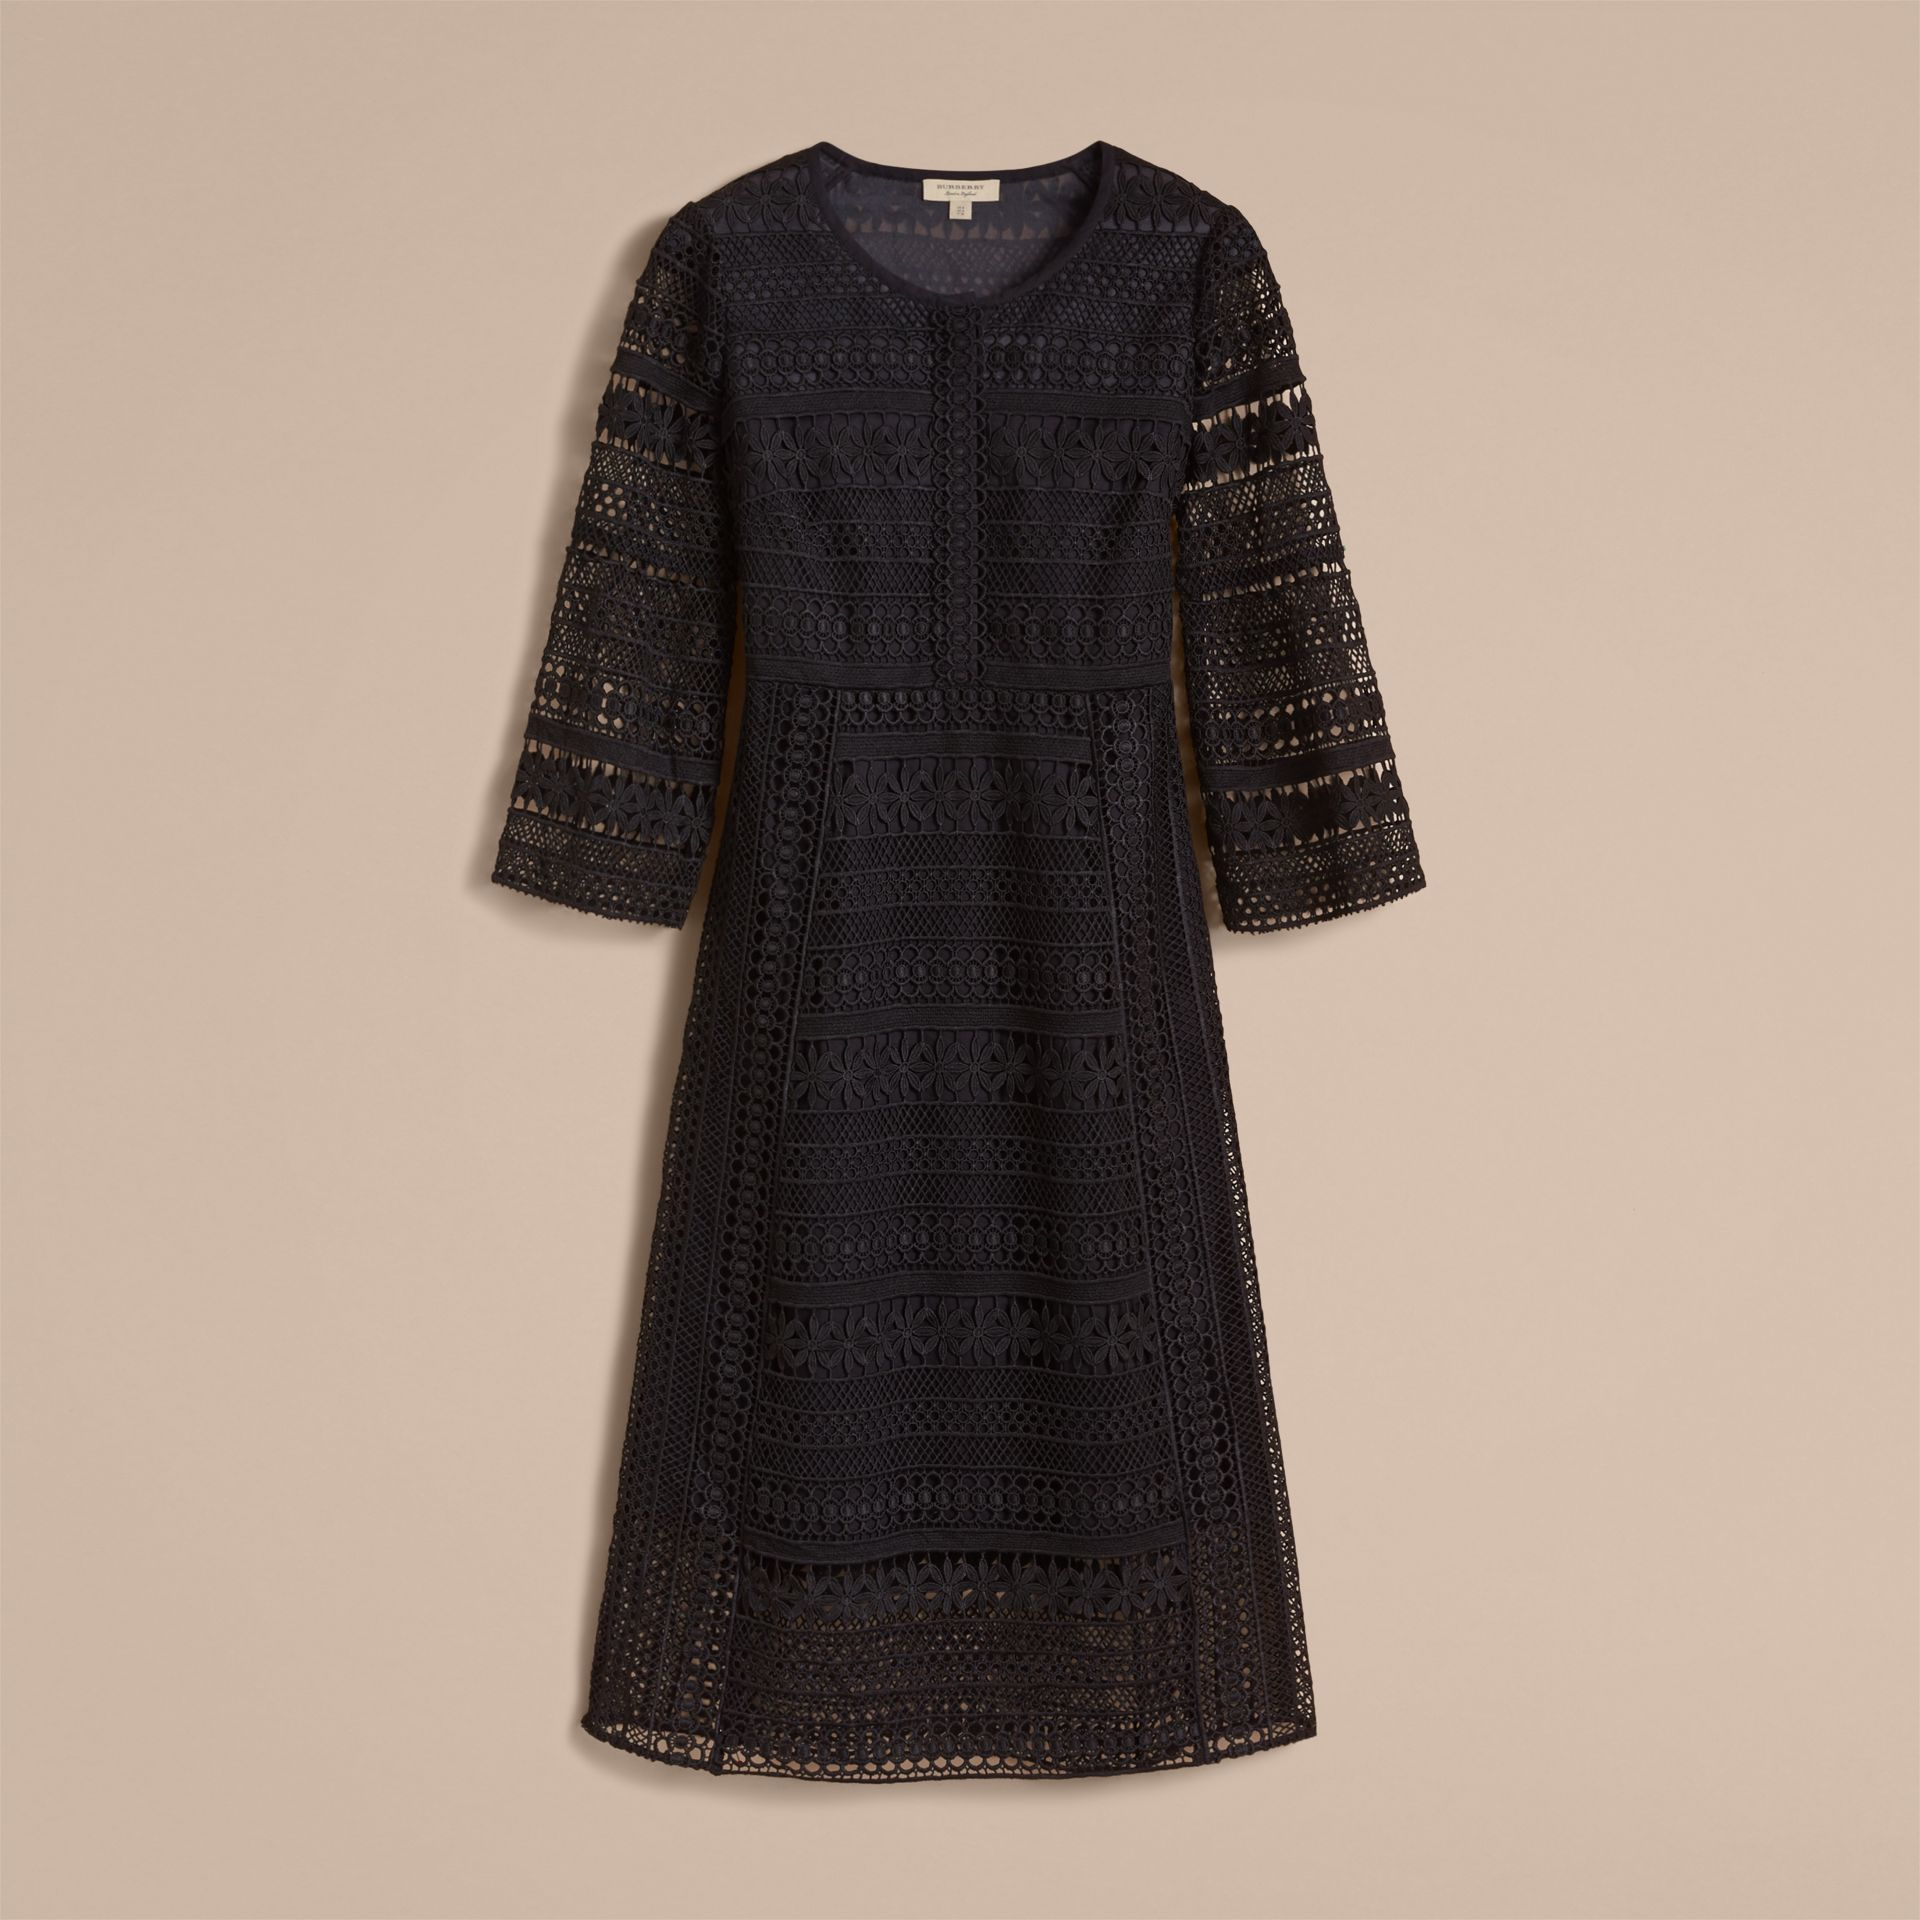 Puff-sleeve Macramé Lace Dress in Black - Women | Burberry - gallery image 4